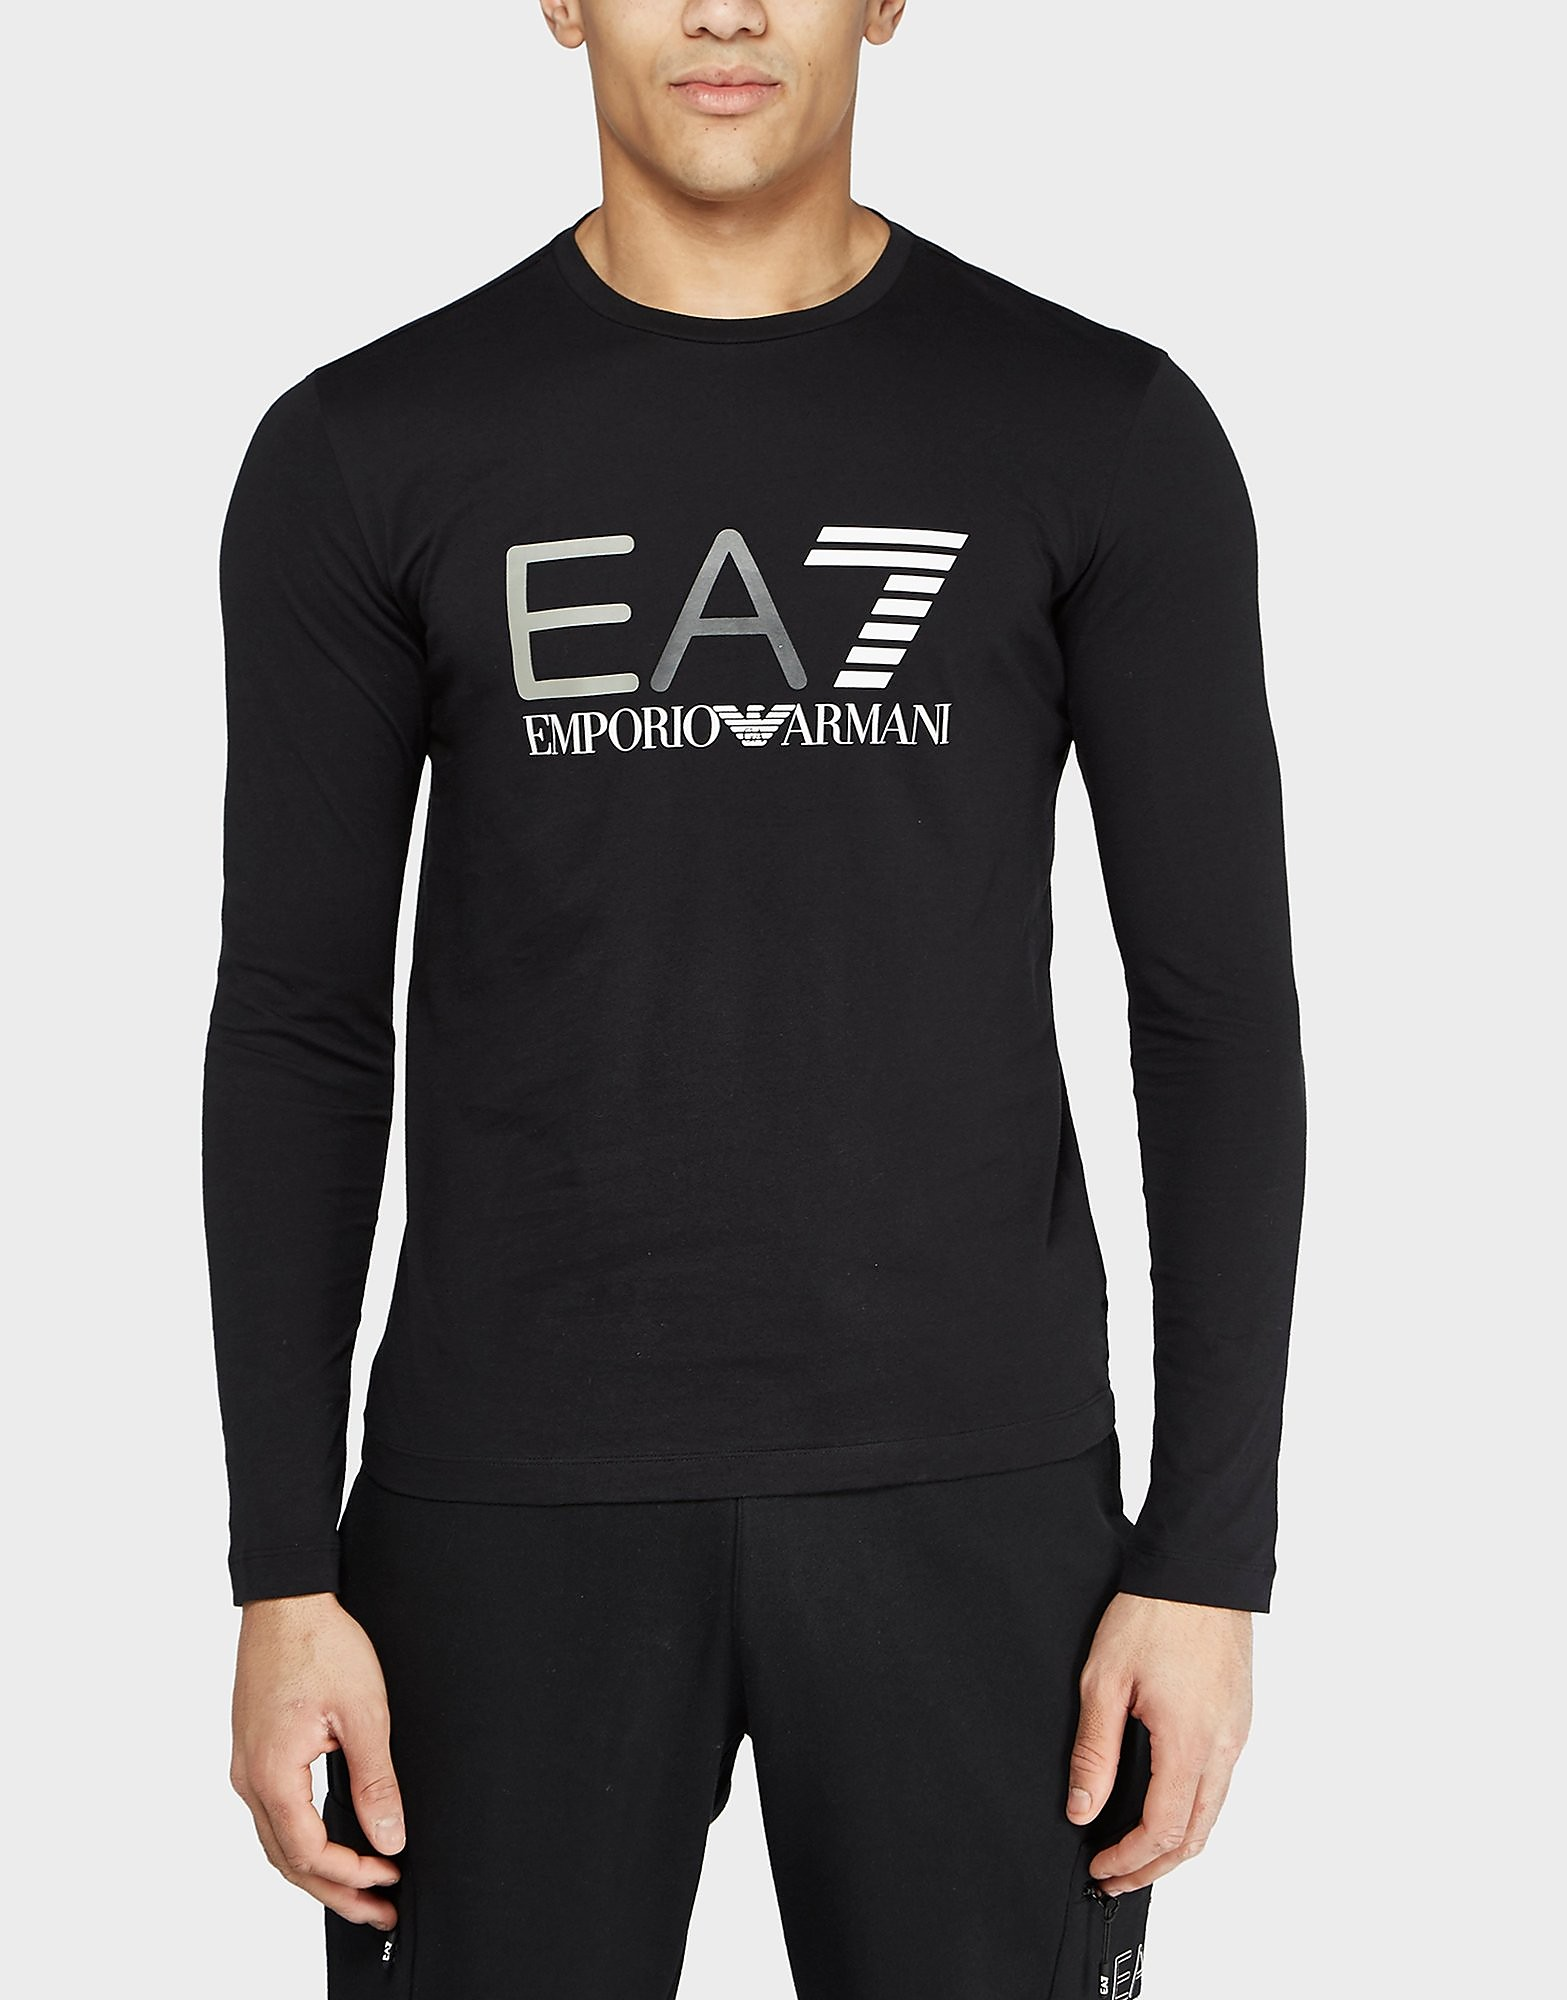 Emporio Armani EA7 Long-Sleeve T-Shirt